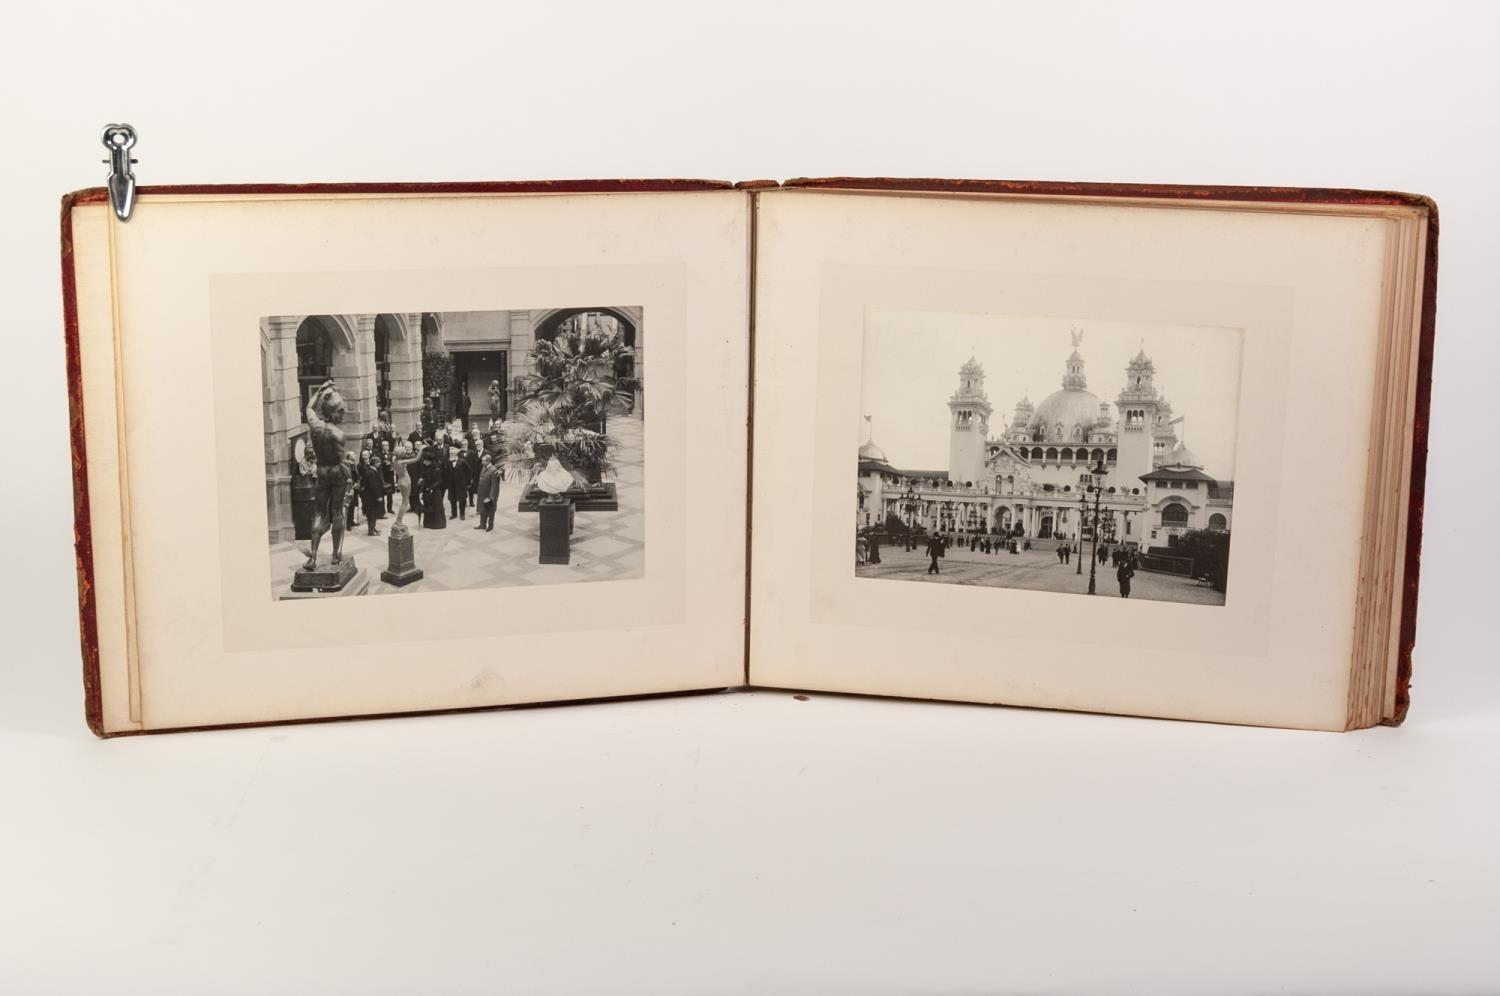 Lot 113 - GLASGOW INTERNATIONAL EXHIBITION 1901- Photograph album bound in full leather with gilt titles and